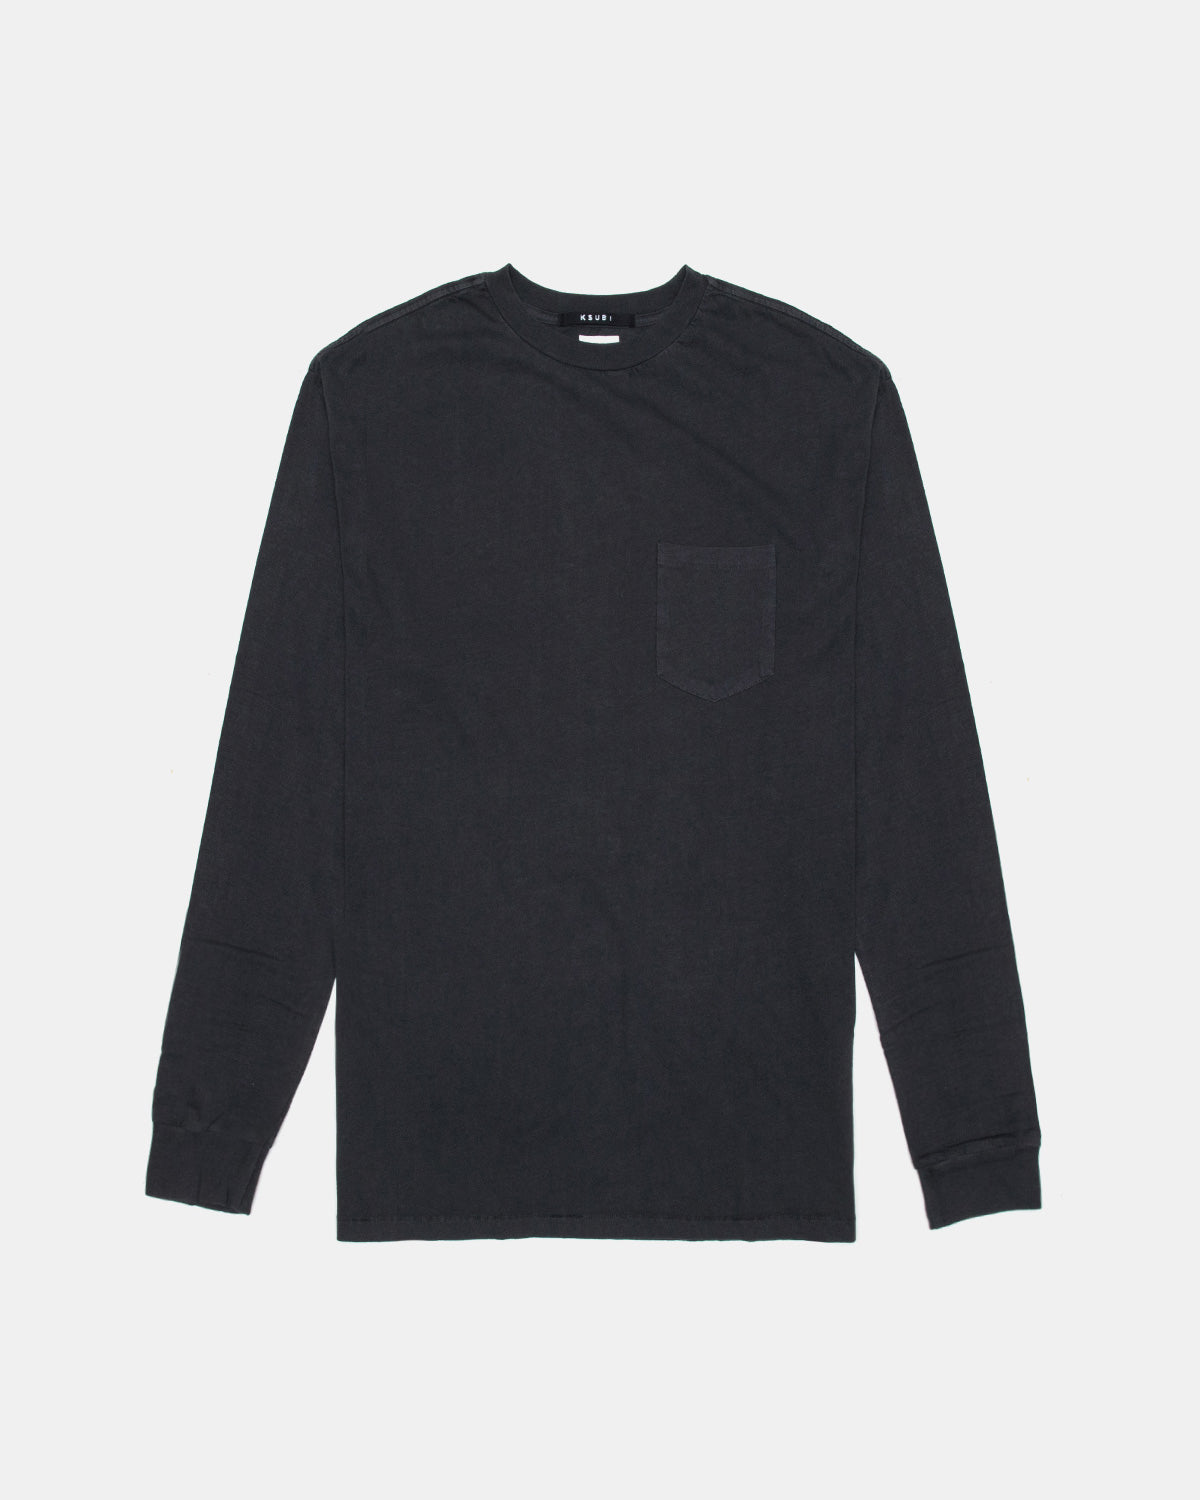 Ksubi - Cache Pocket Long Sleeve Tee (Back to Black)